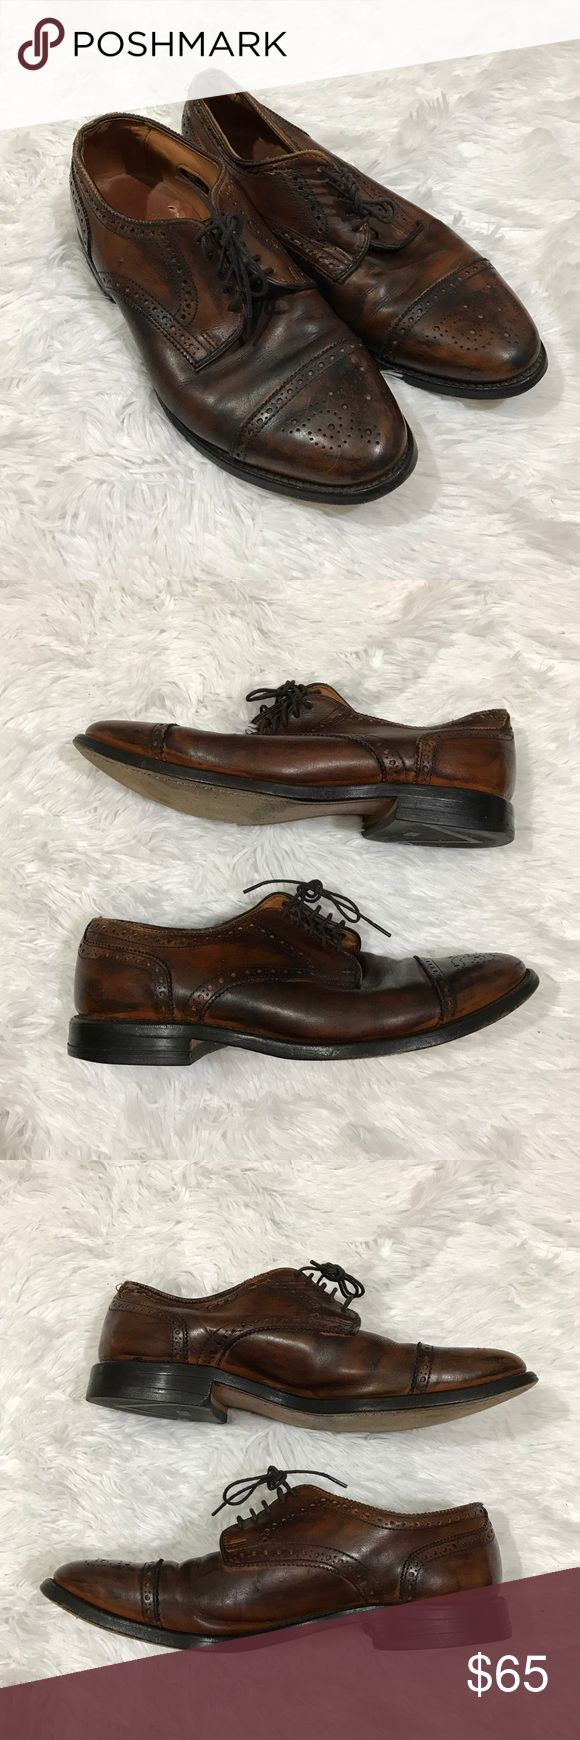 """Allen Edmonds Sanford men's oxfords sz 8.5 brown These Men's Allen Edmonds """"Sanford"""" oxfords are a perfect classic work dress shoe.  They are a men's size 8.5 and they are a two tone oiled leather look in good preowned condition with light overall wear and a couple small scuffs (see images for details).  Retails for $345 new! Allen Edmonds Shoes Oxfords & Derbys"""